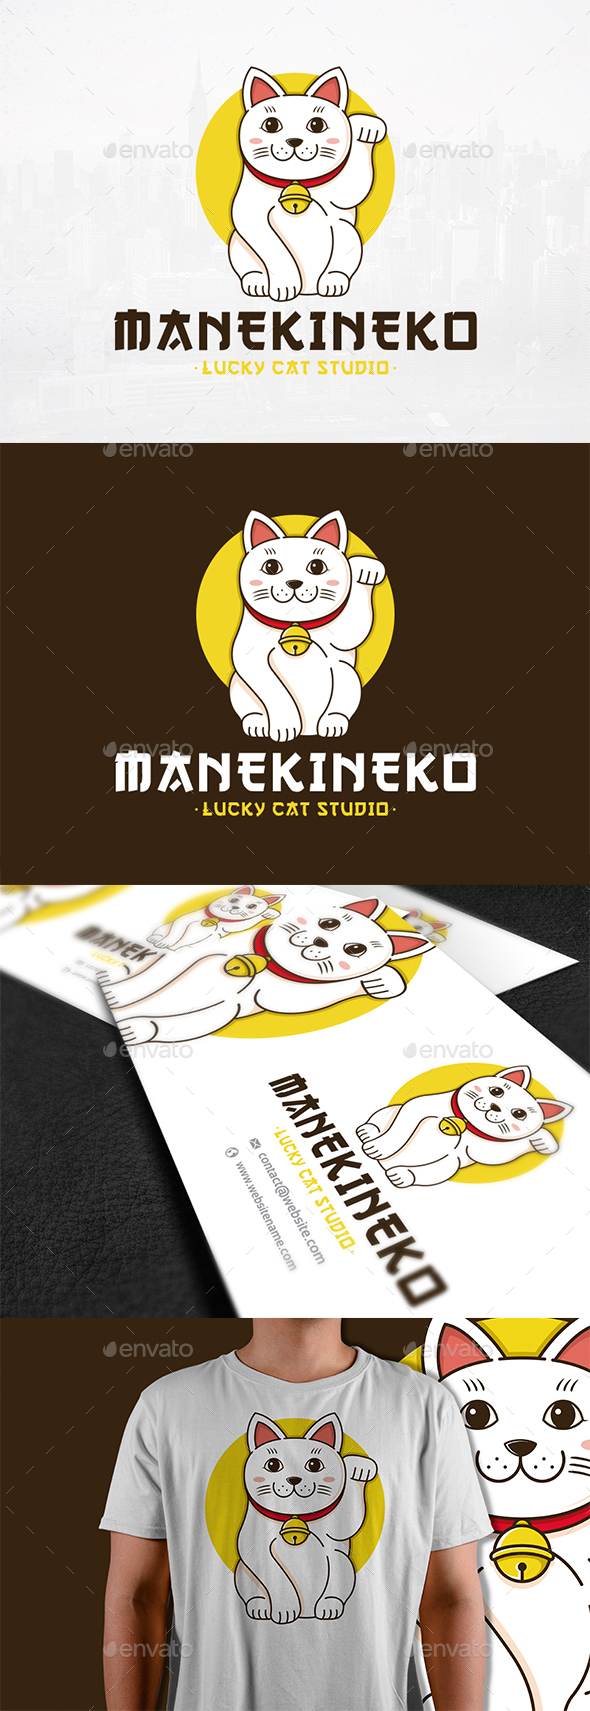 Maneki Neko Logo Template - Animals Logo Templates